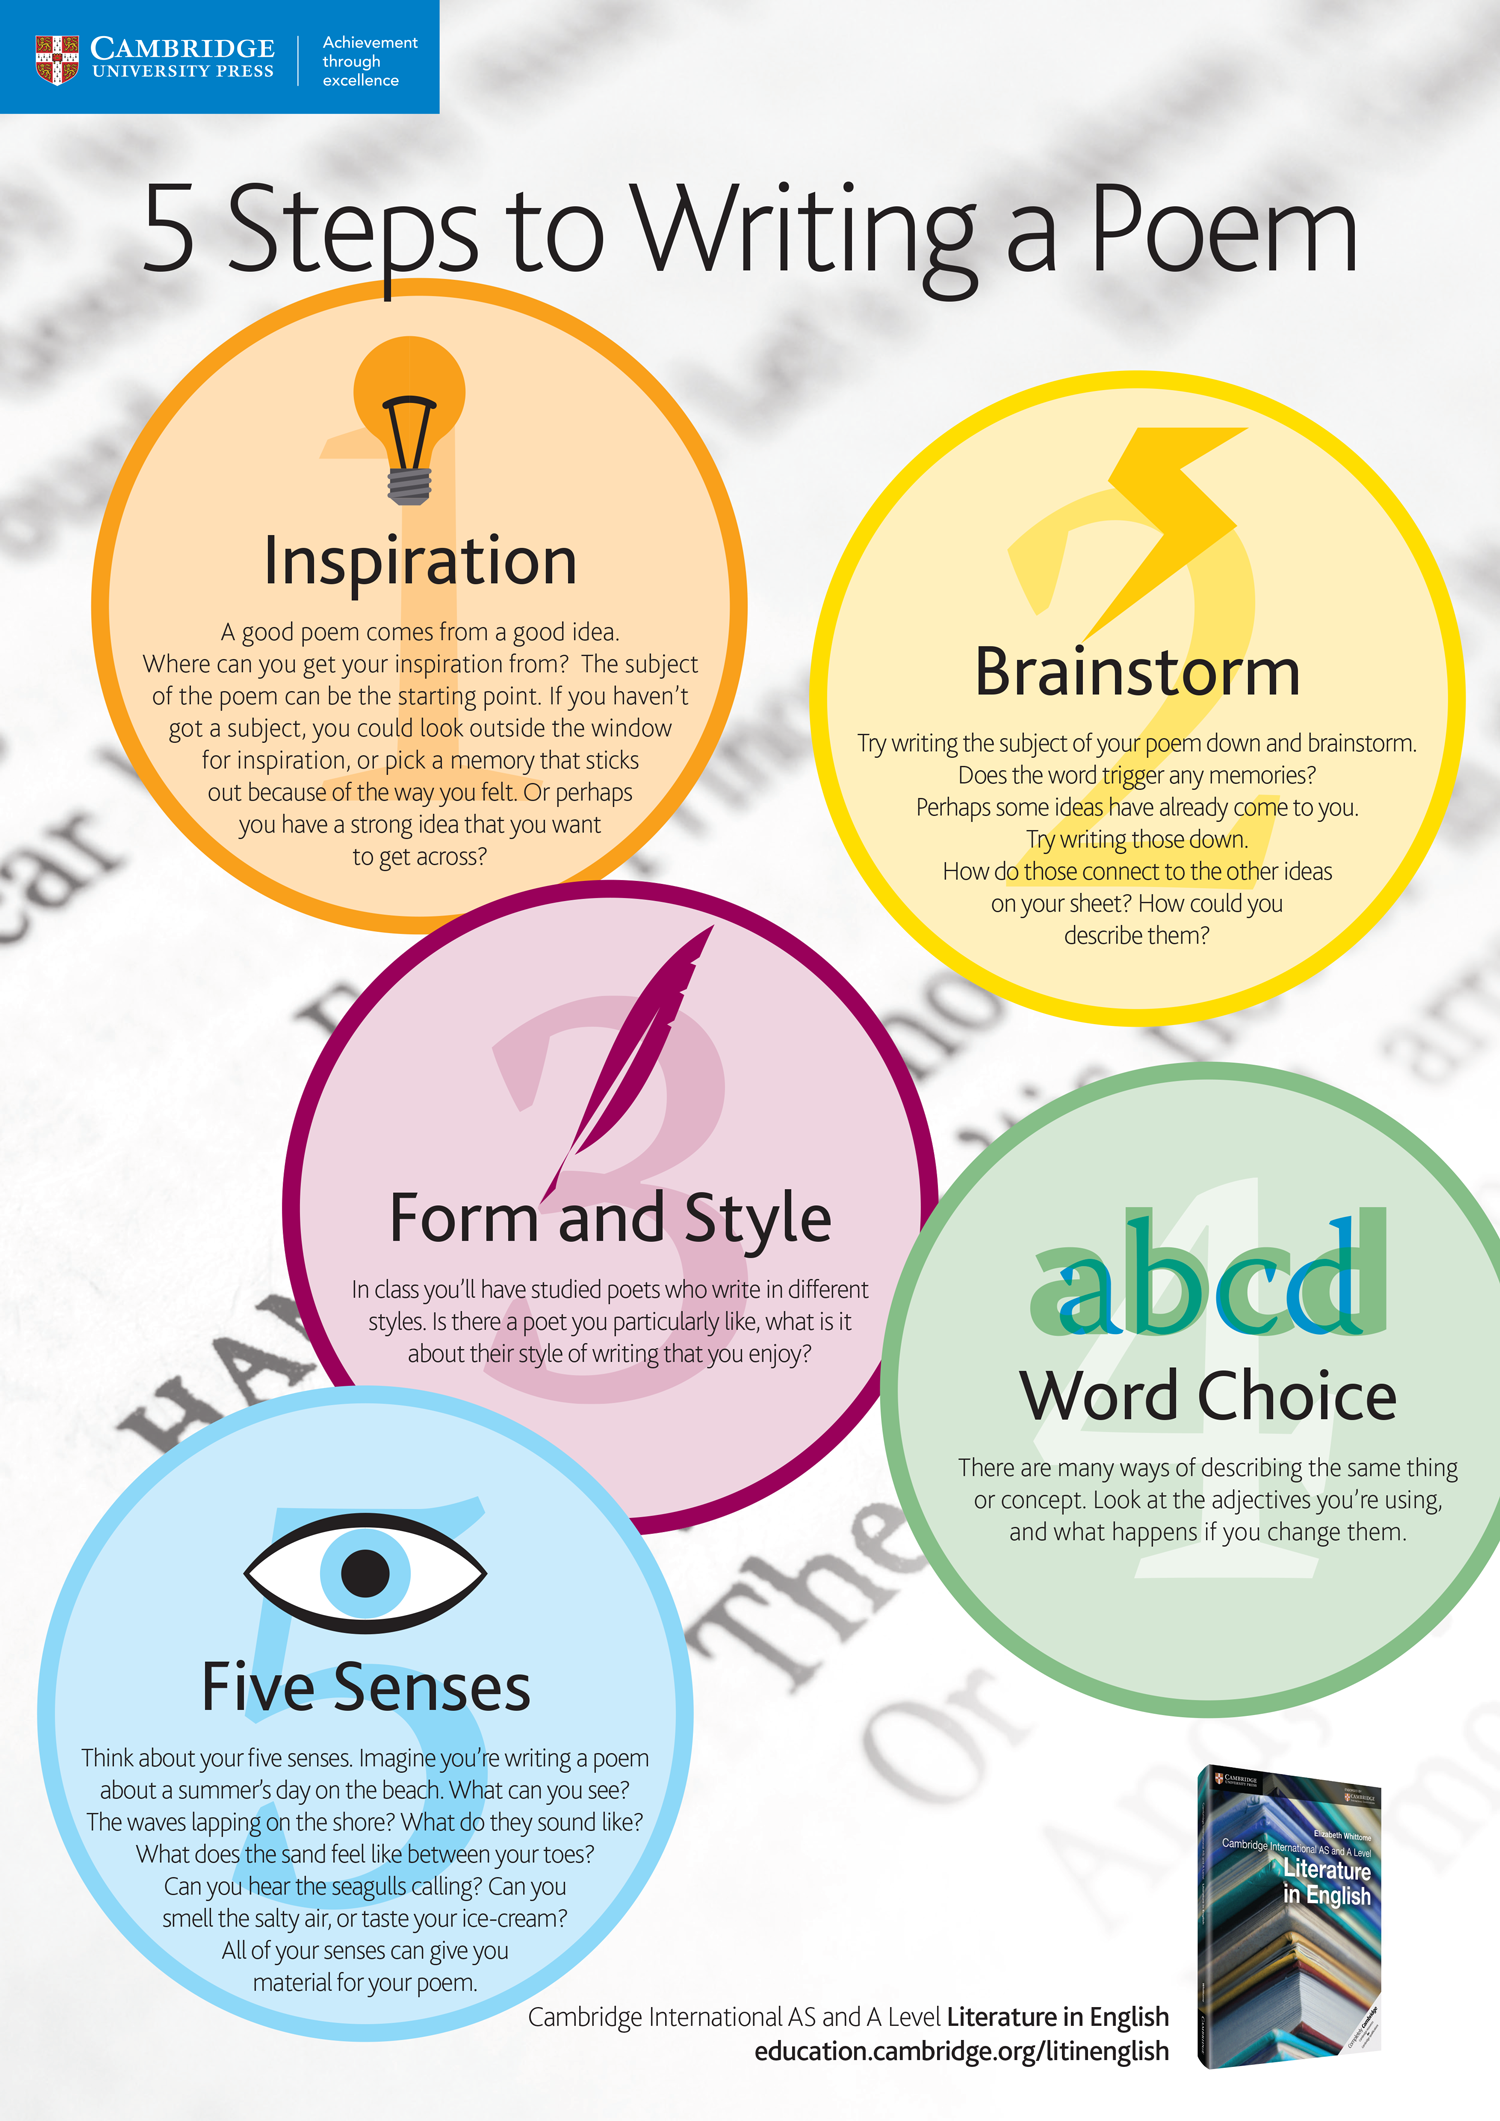 5 Steps to Writing a Poem is our poster for July the image to